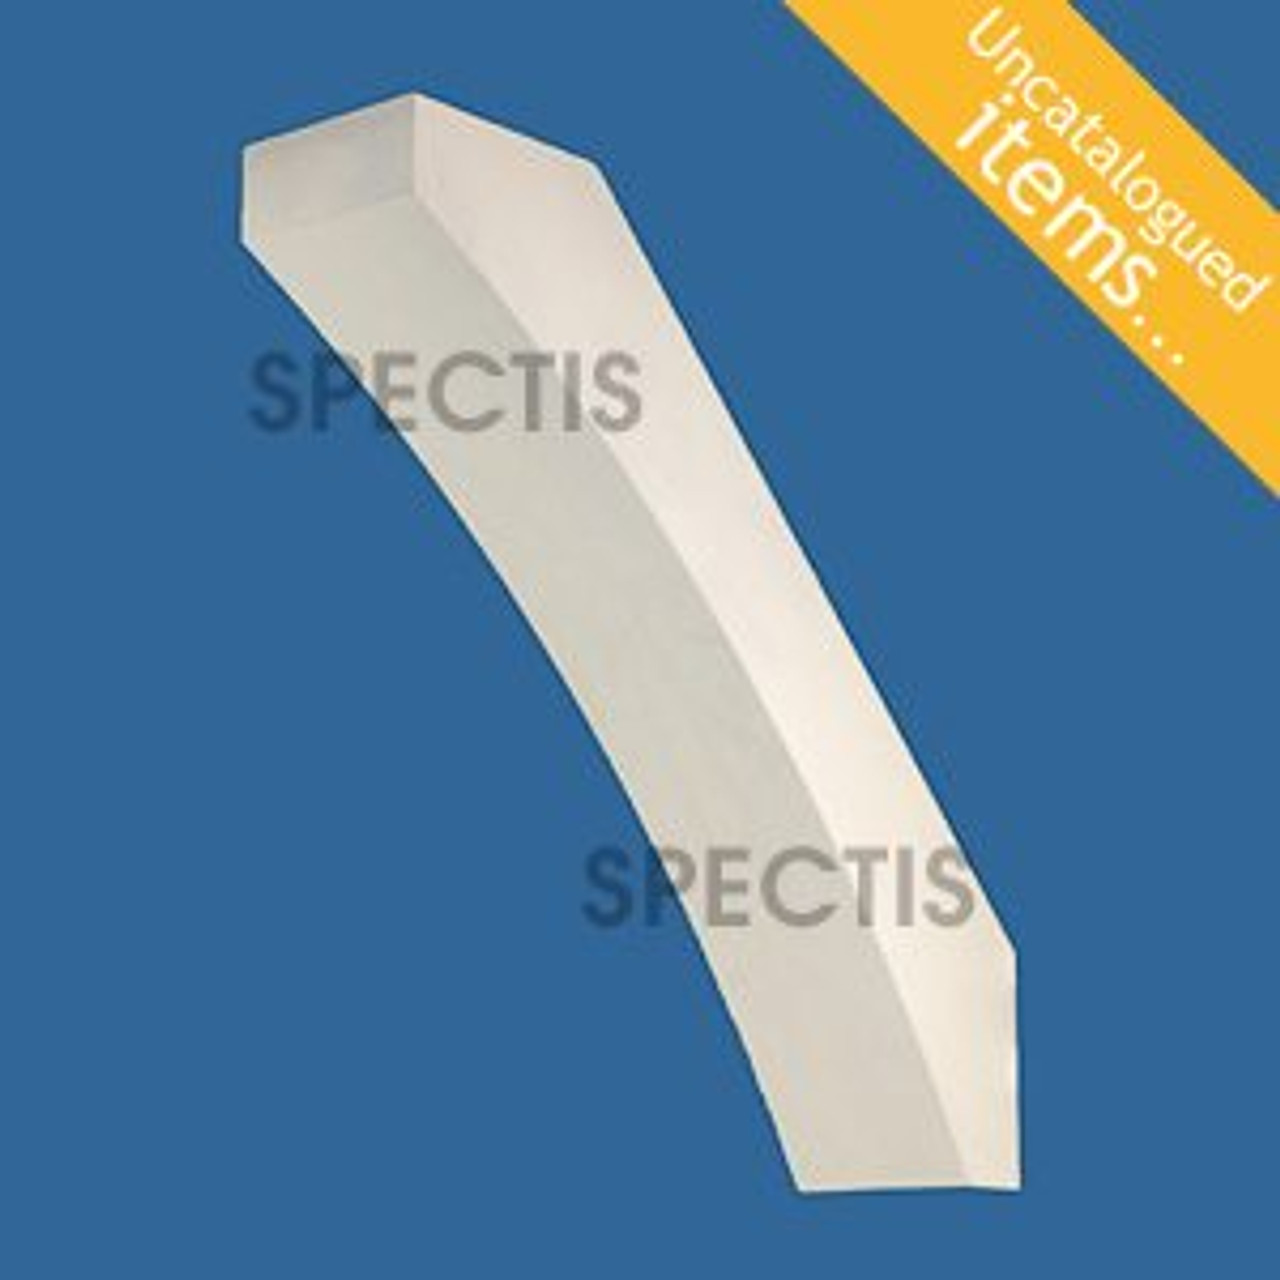 "BL3098 Spectis Eave Block or Bracket 7""W x 32""H x 36"" Projection"